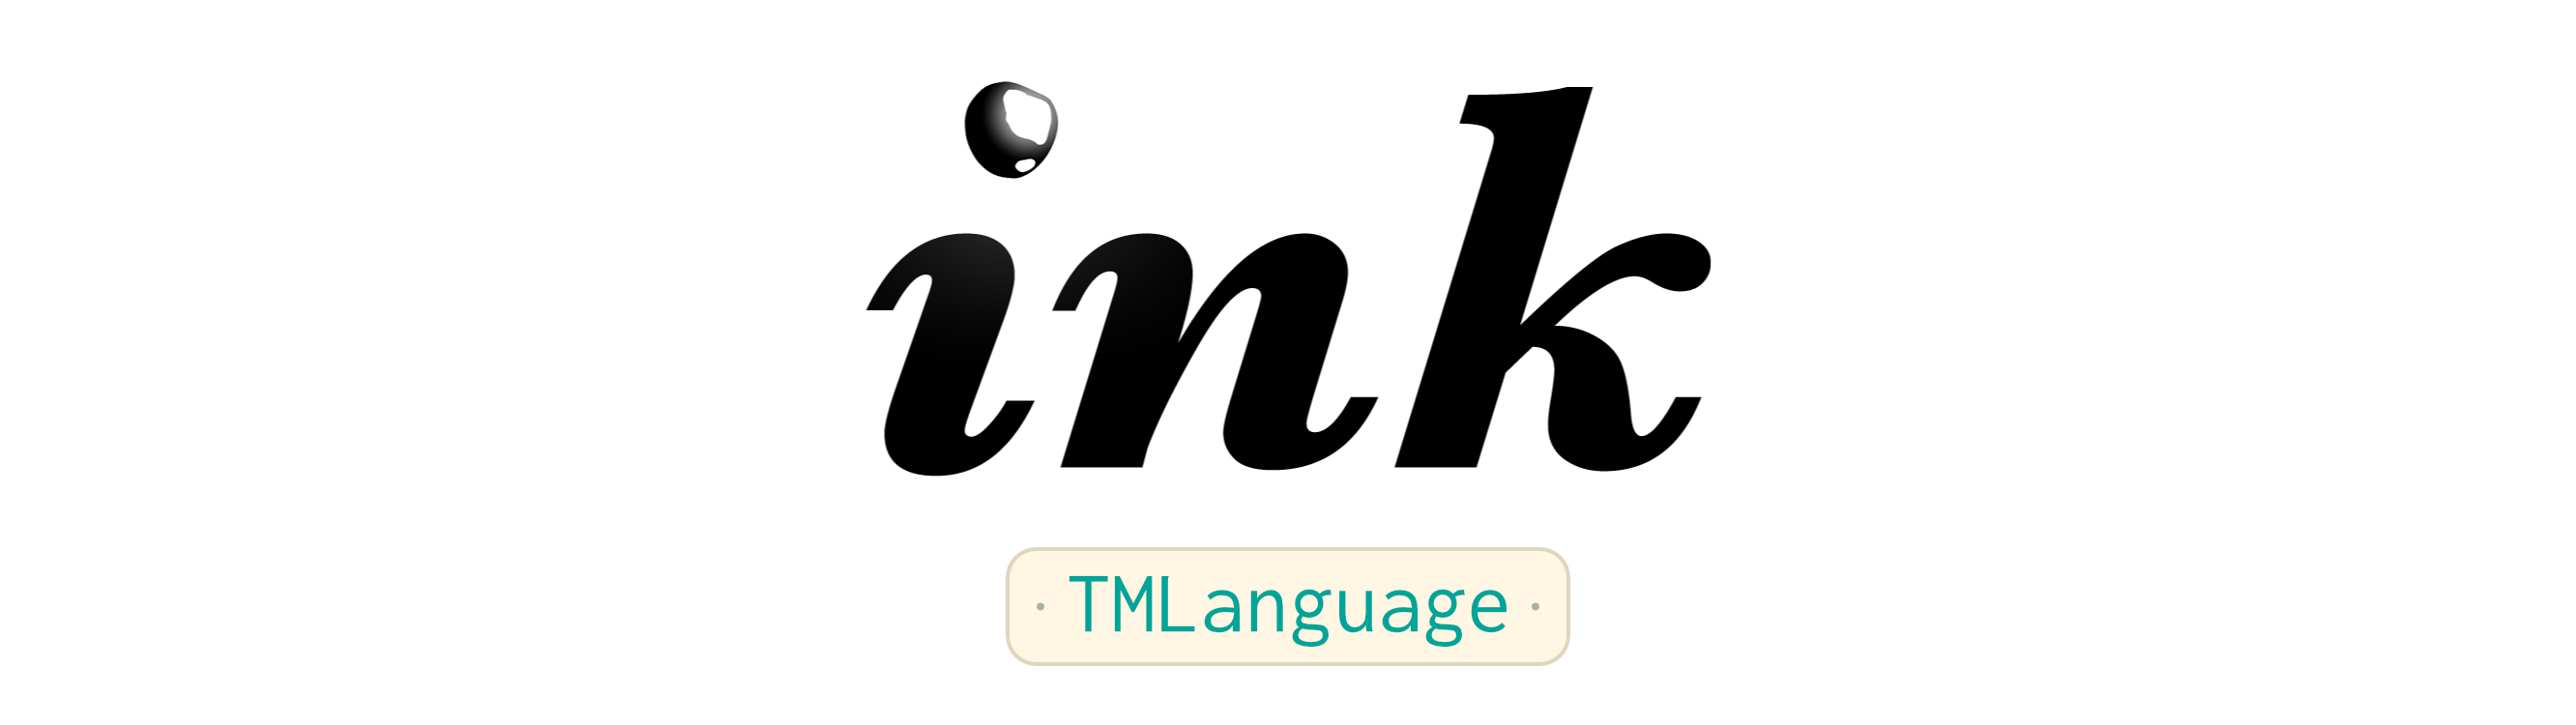 Ink TMLanguage